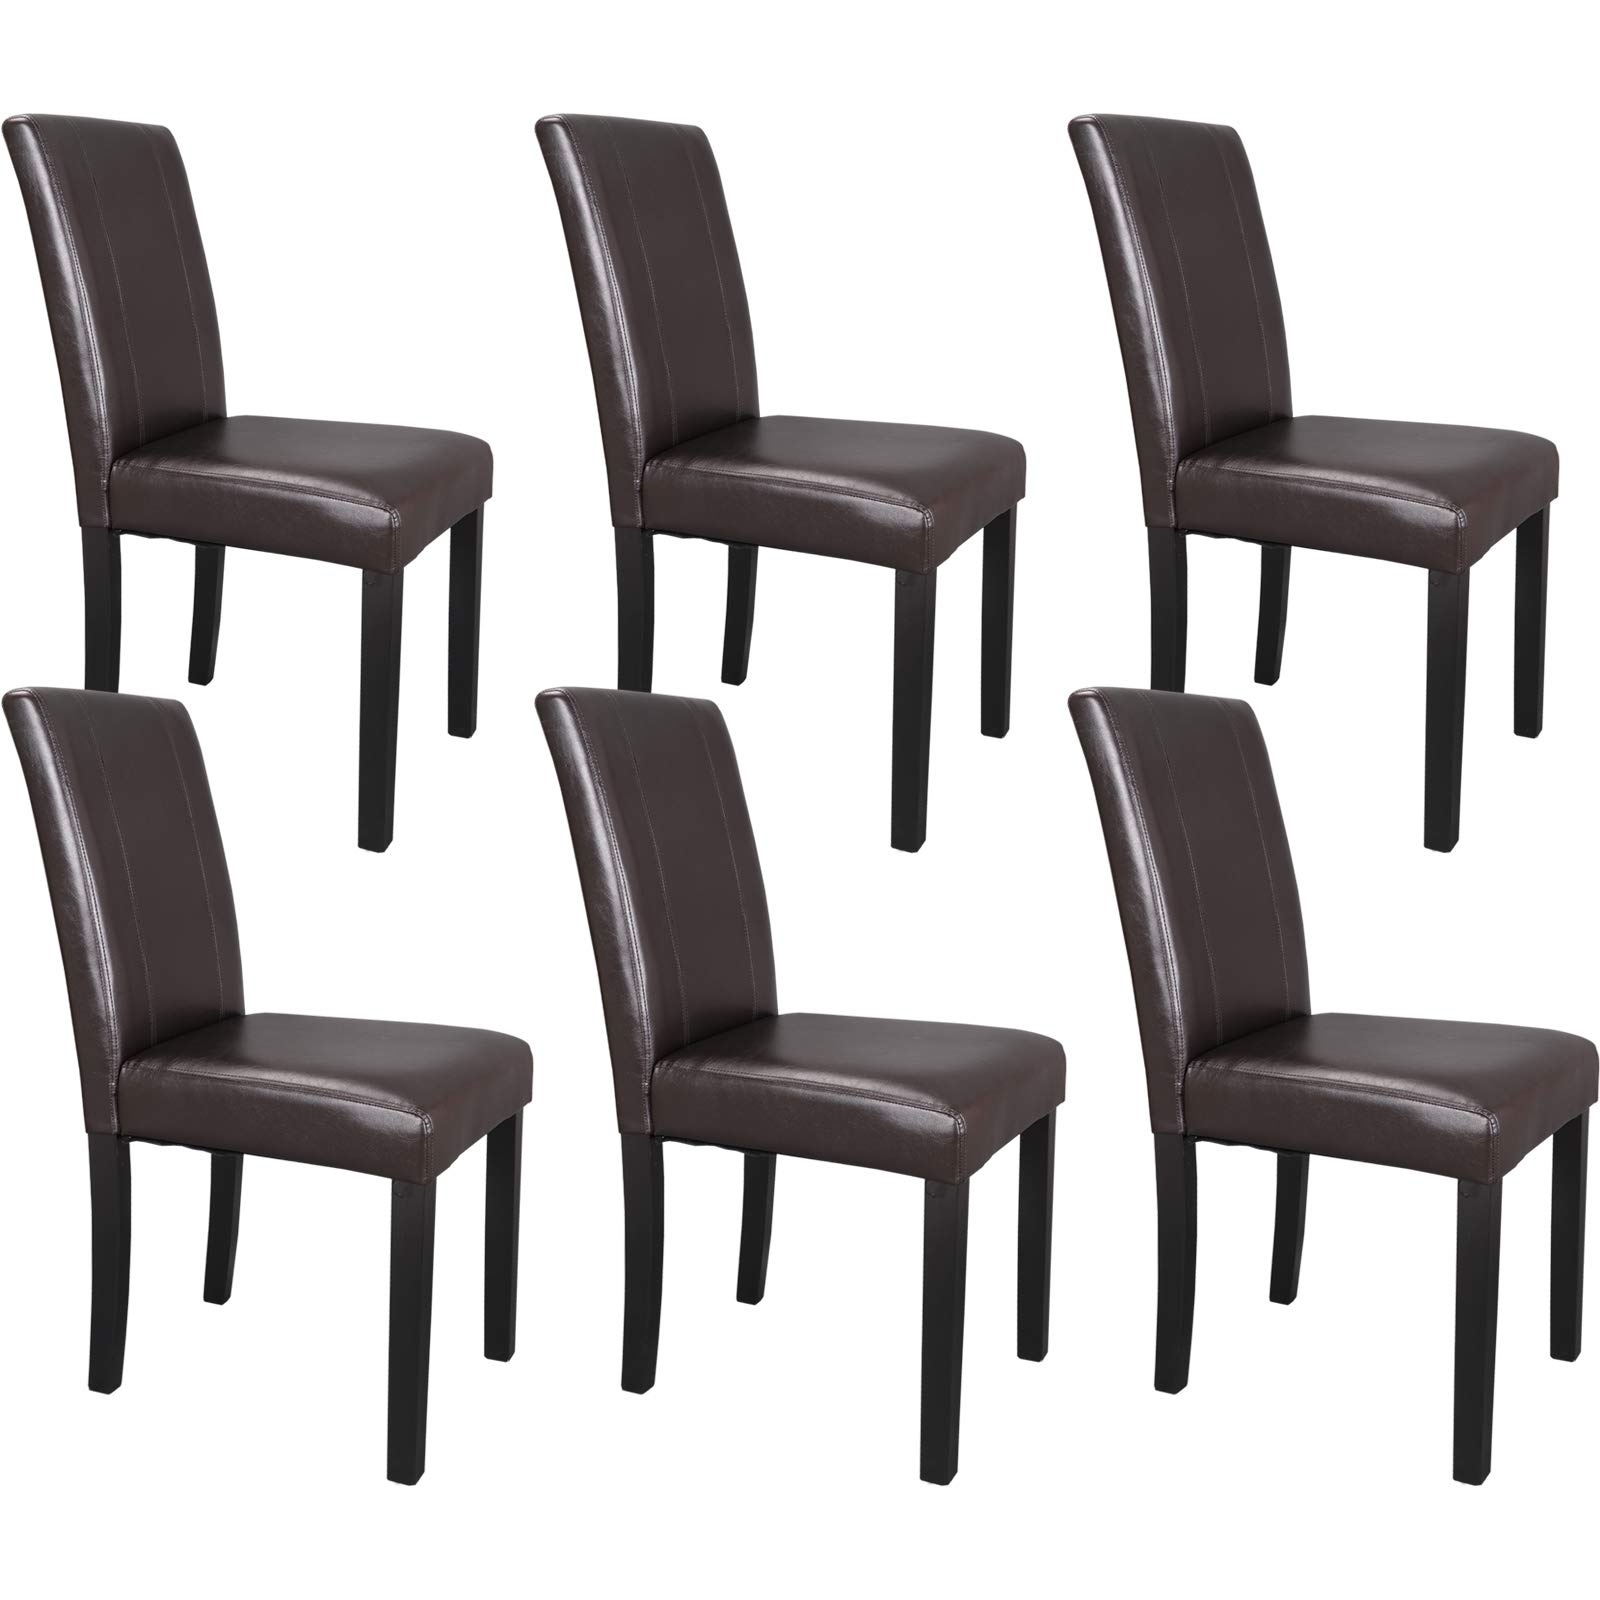 ZENY Leather Dining Chairs with Solid Wood Legs Chair Urban Style, Set of 6 by ZENY